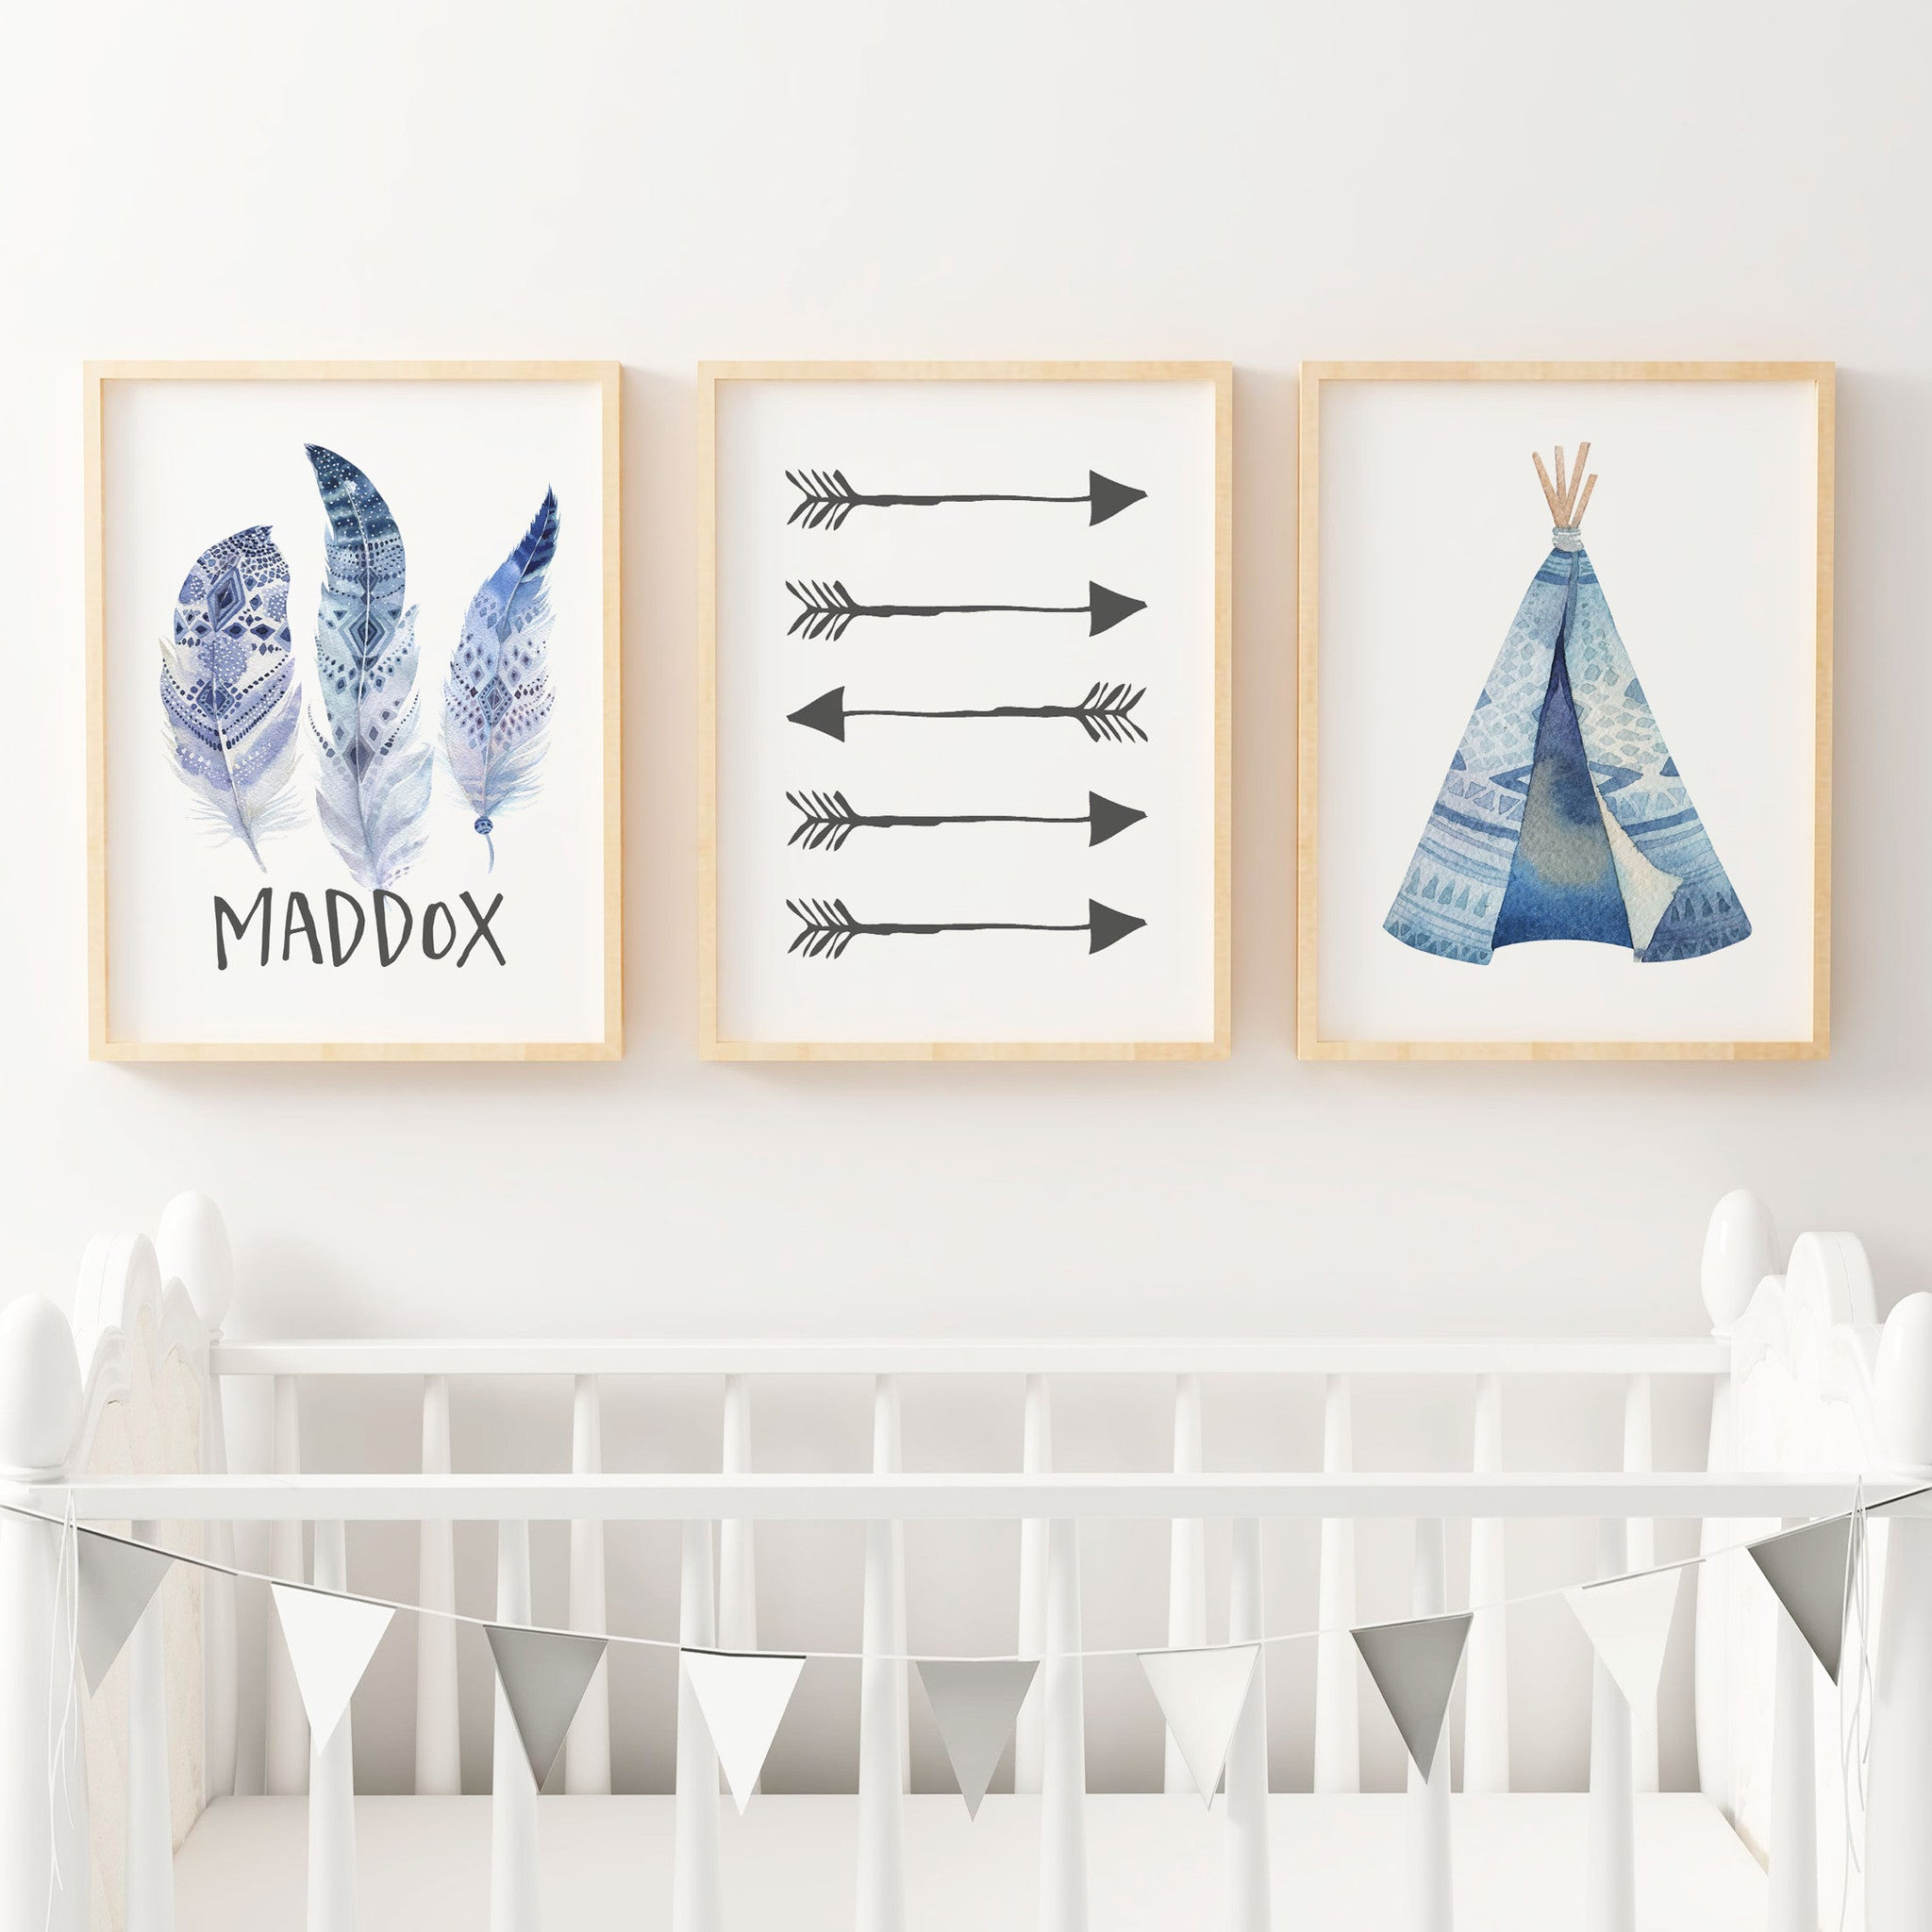 Charmant Boys Boho Tribal Nursery Or Bedroom Wall Art Print Set   Personalised ...